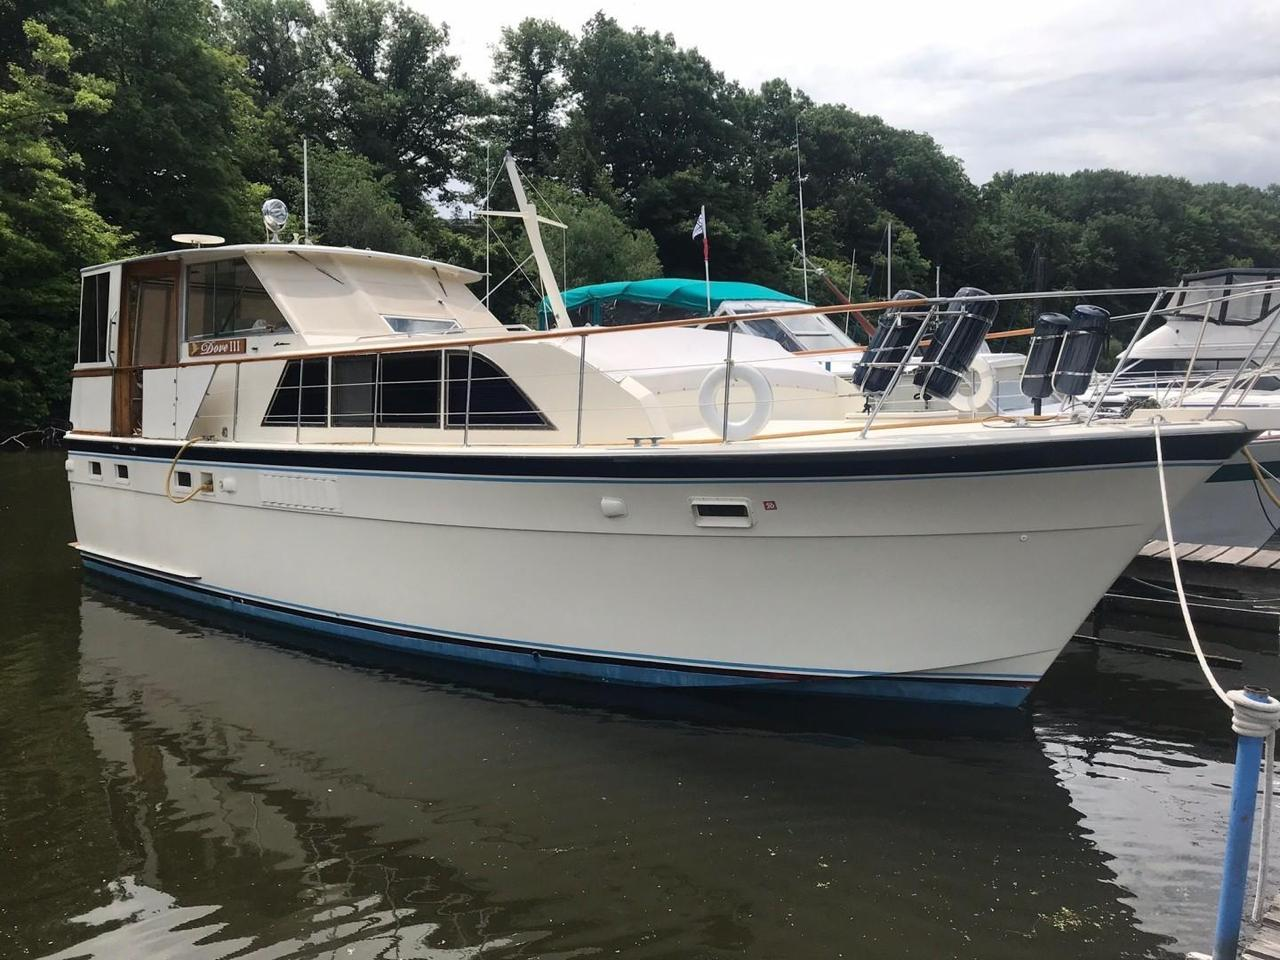 1971 Used Hatteras 43 Double Cabin Cruiser Boat For Sale - $65,900